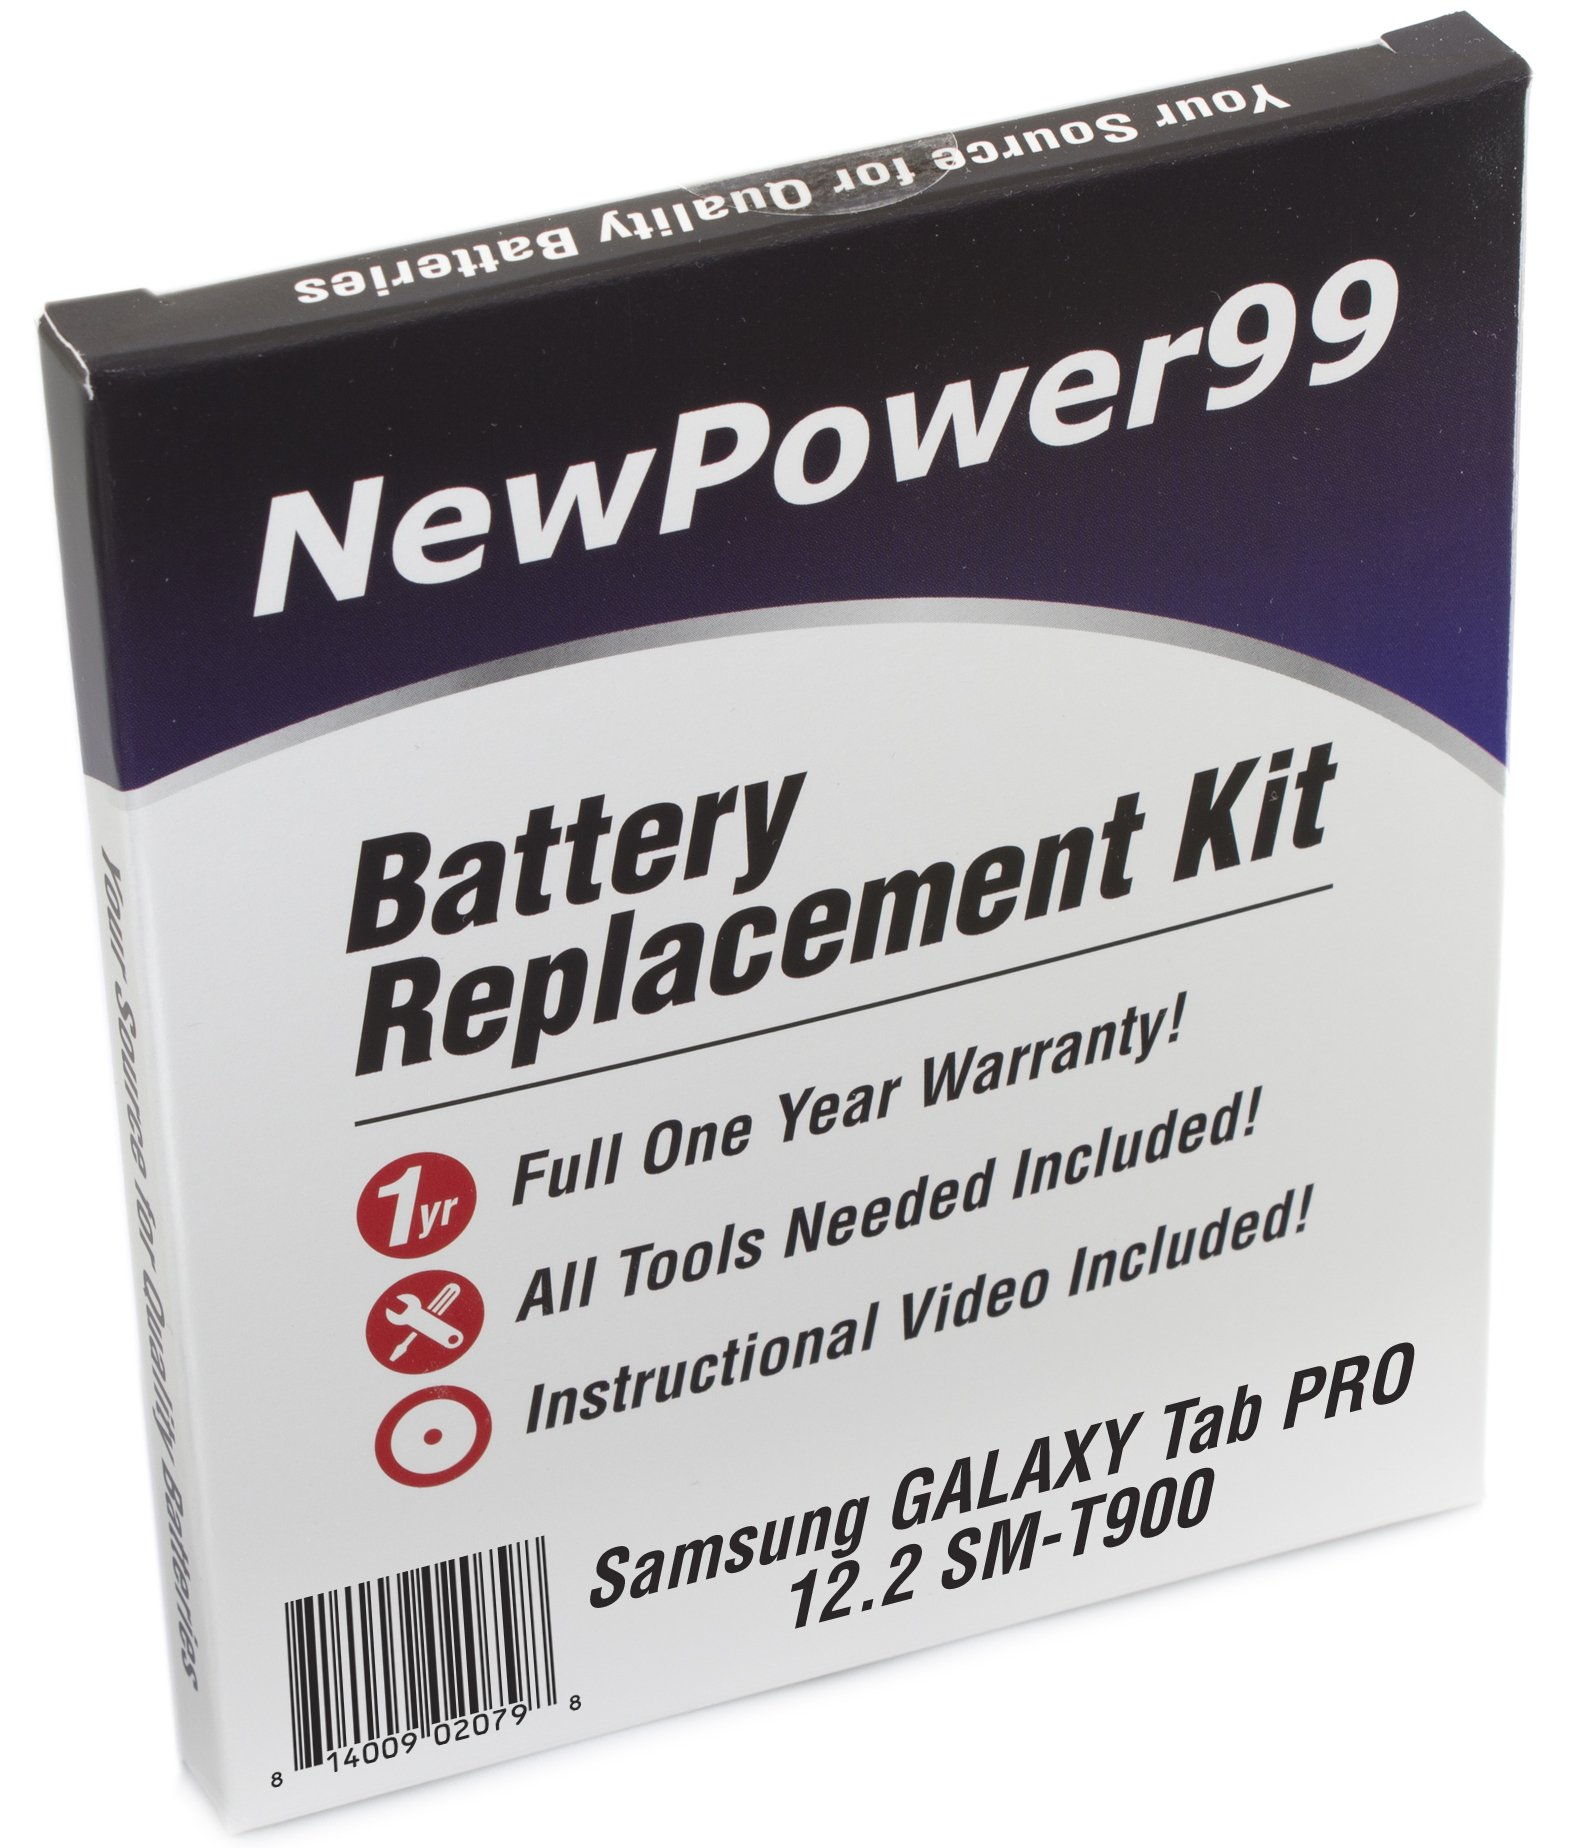 NewPower99 Battery Replacement Kit with Battery, Instructions and Tools for Samsung Galaxy Tab PRO 12.2 SM-T900 by NewPower99